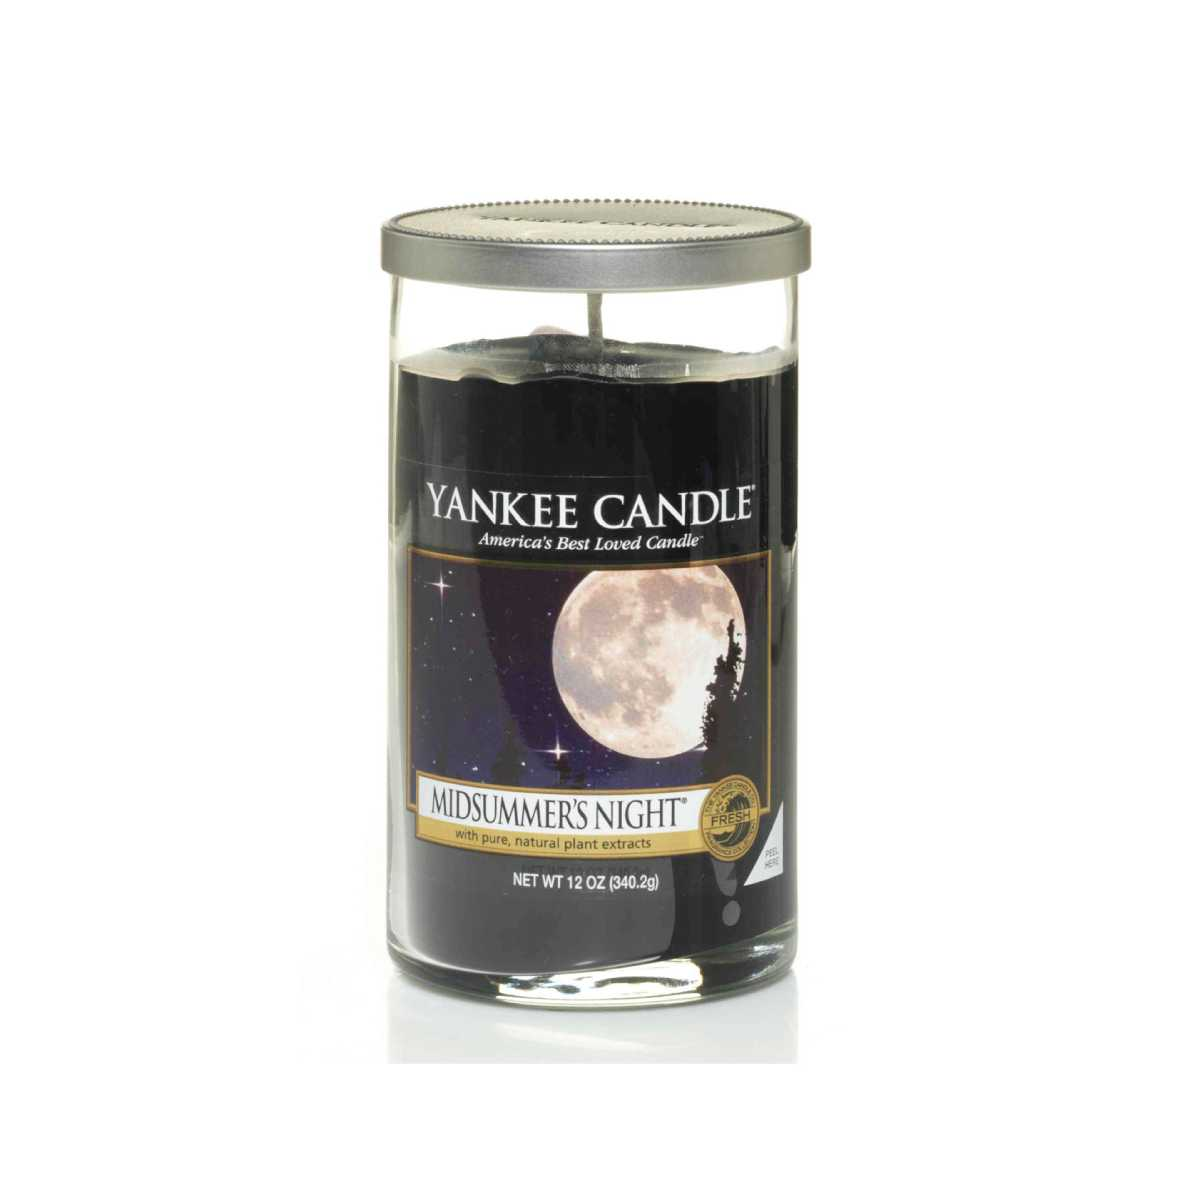 YANKEE CANDLE Vonná svíčka Midsummers Night – M